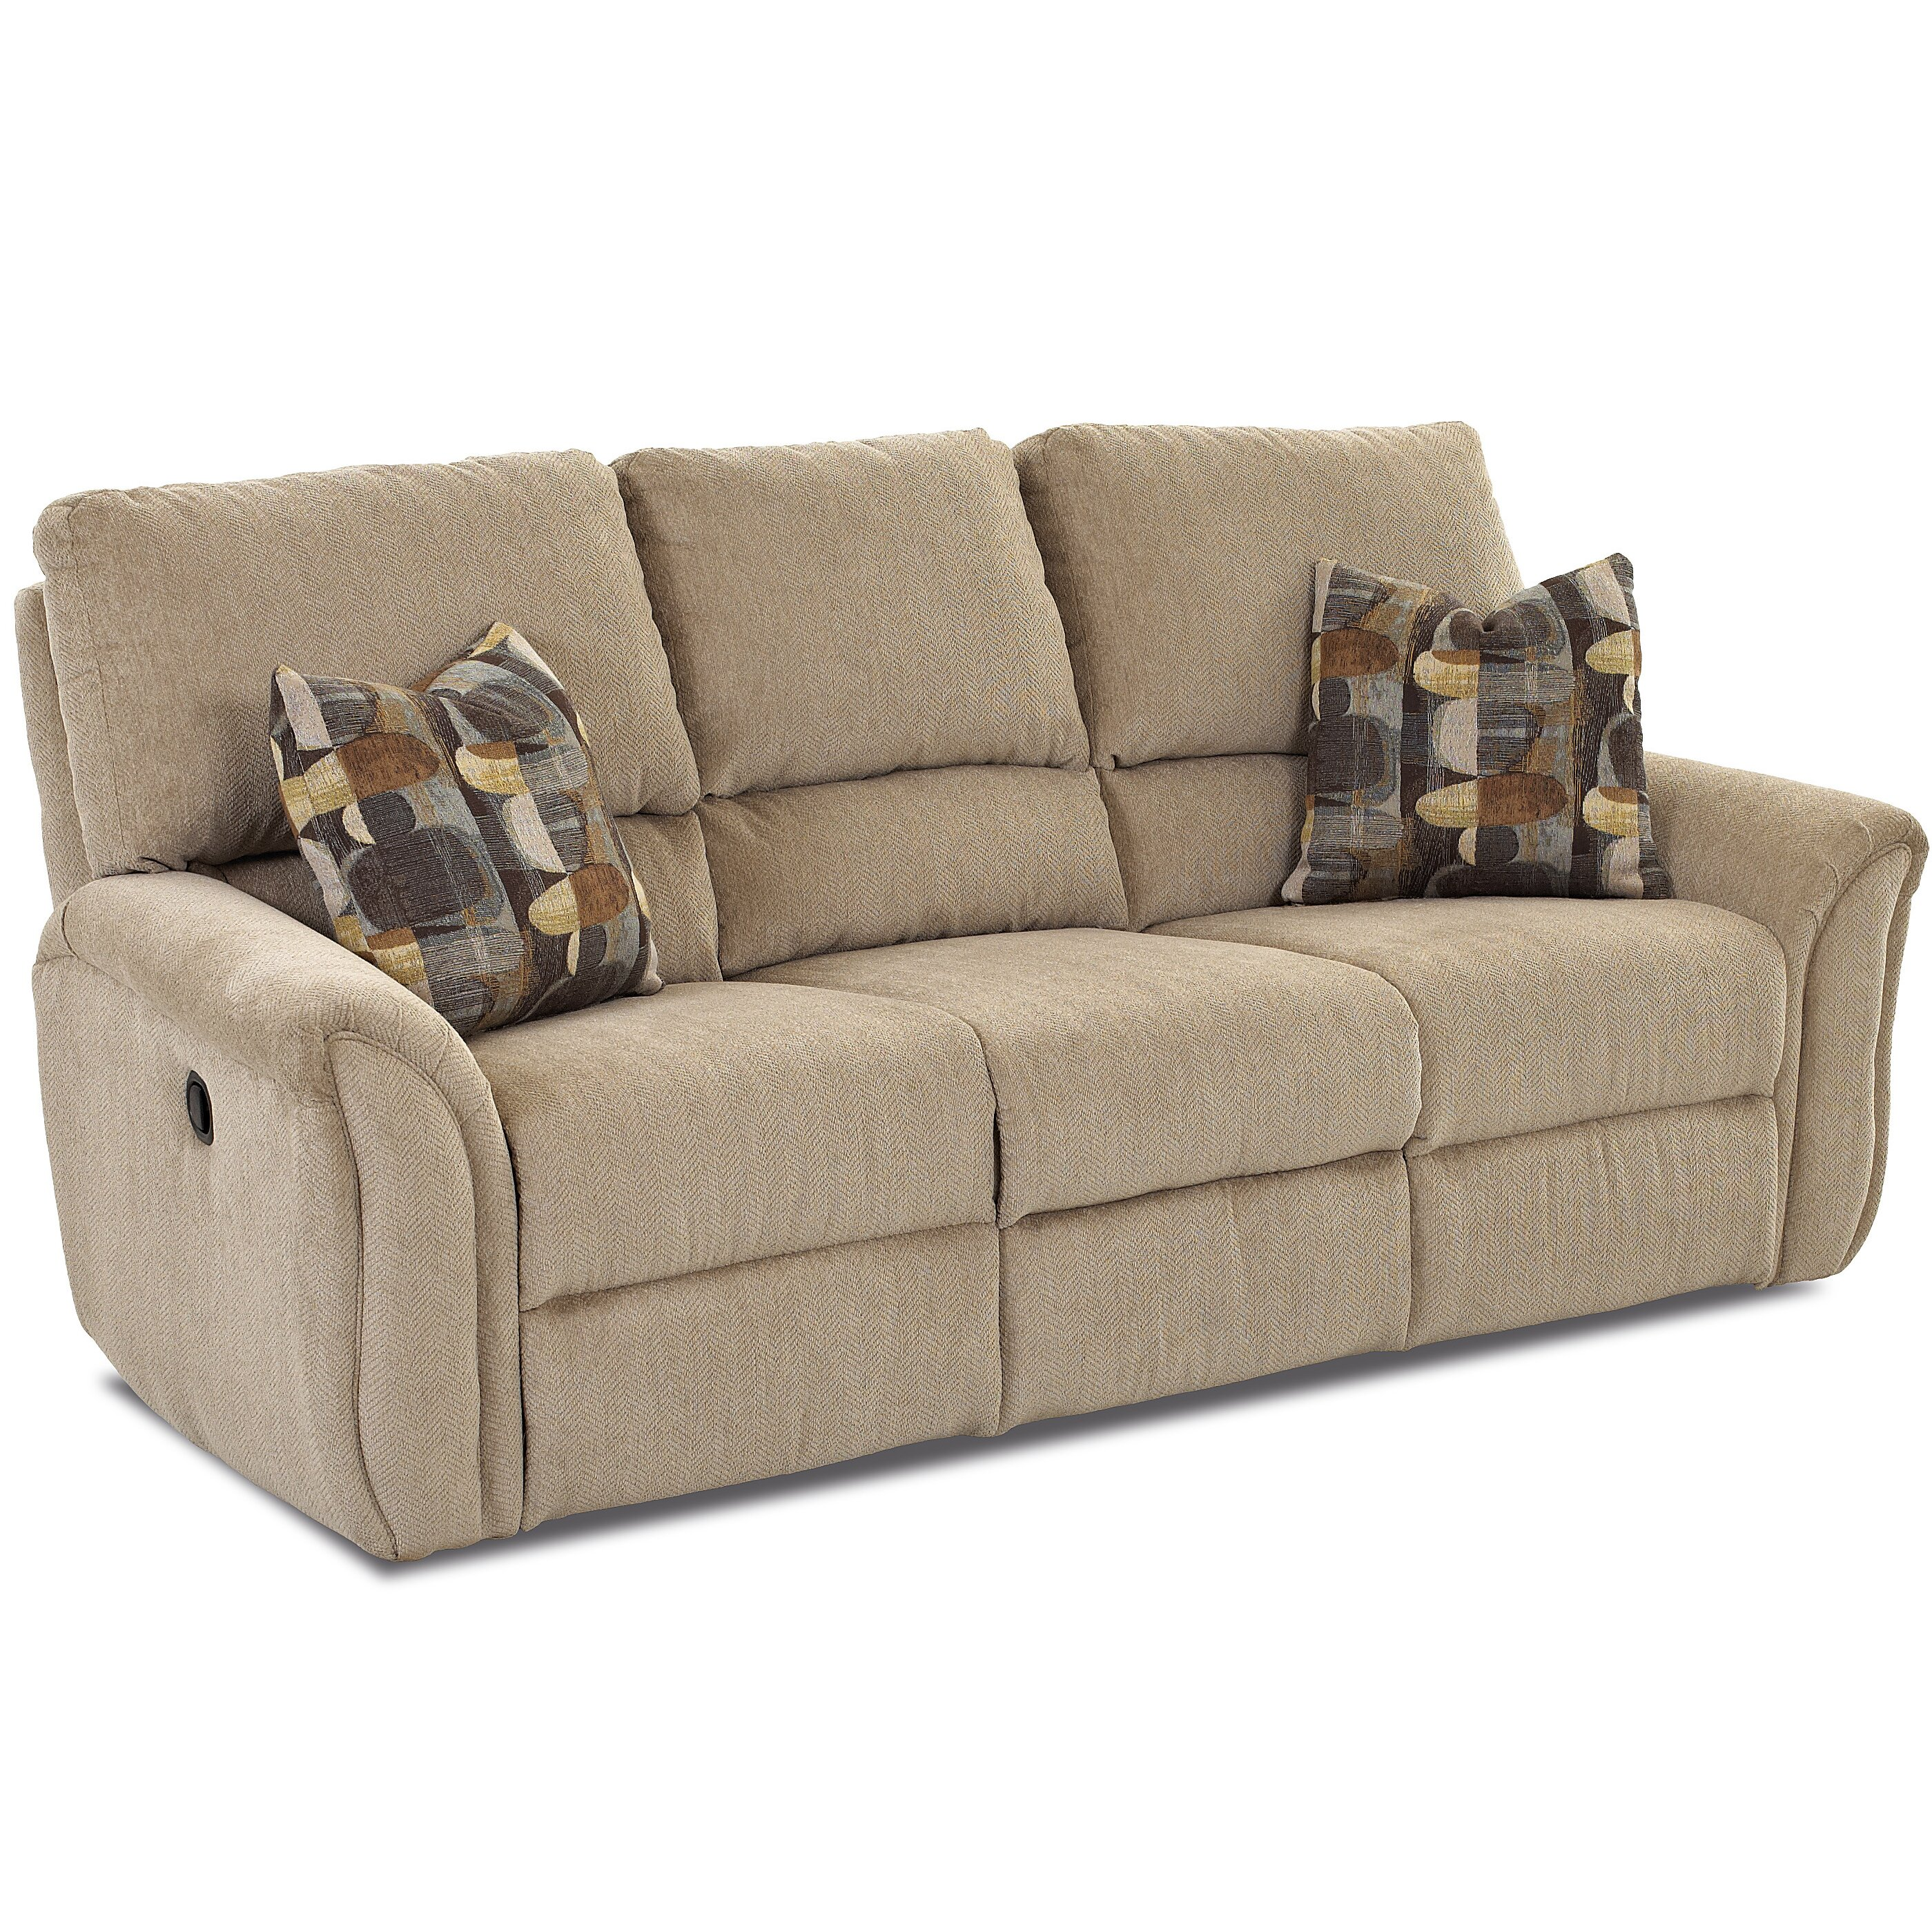 Klaussner Furniture Miley Reclining Sofa Wayfair